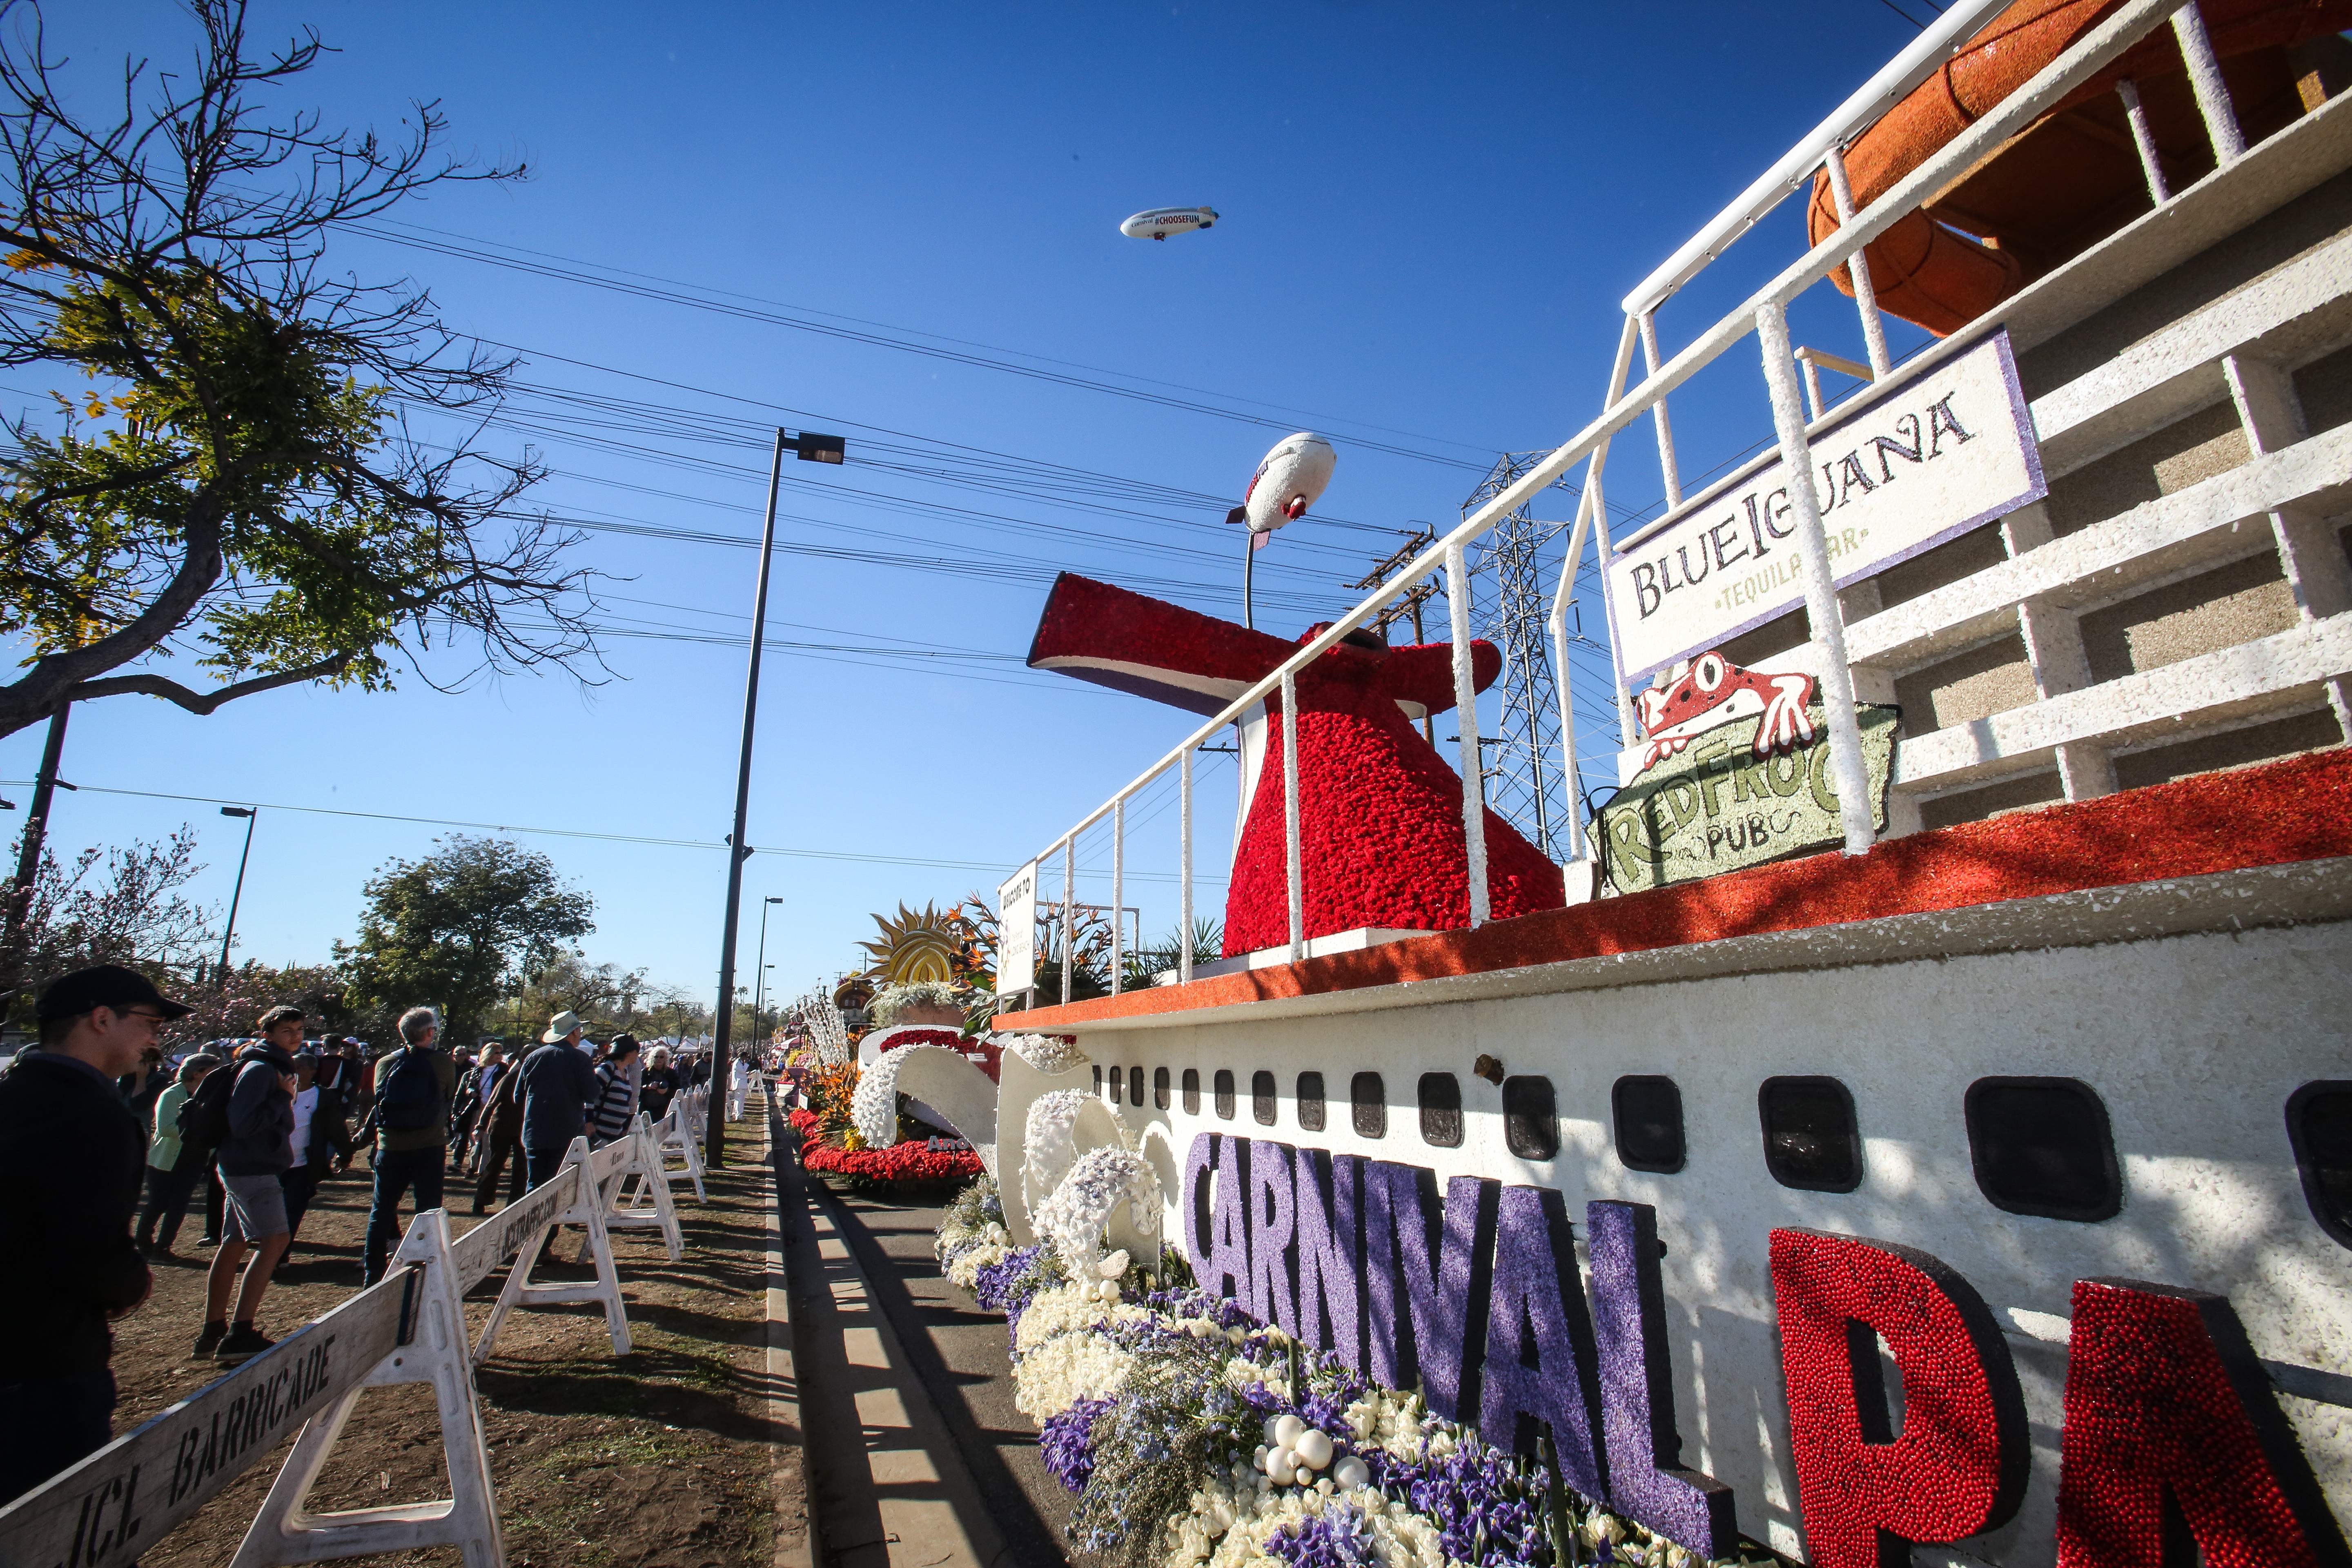 Carnival Cruise AirShip Takes Flight; Kicks Off Month-Long Tour of California